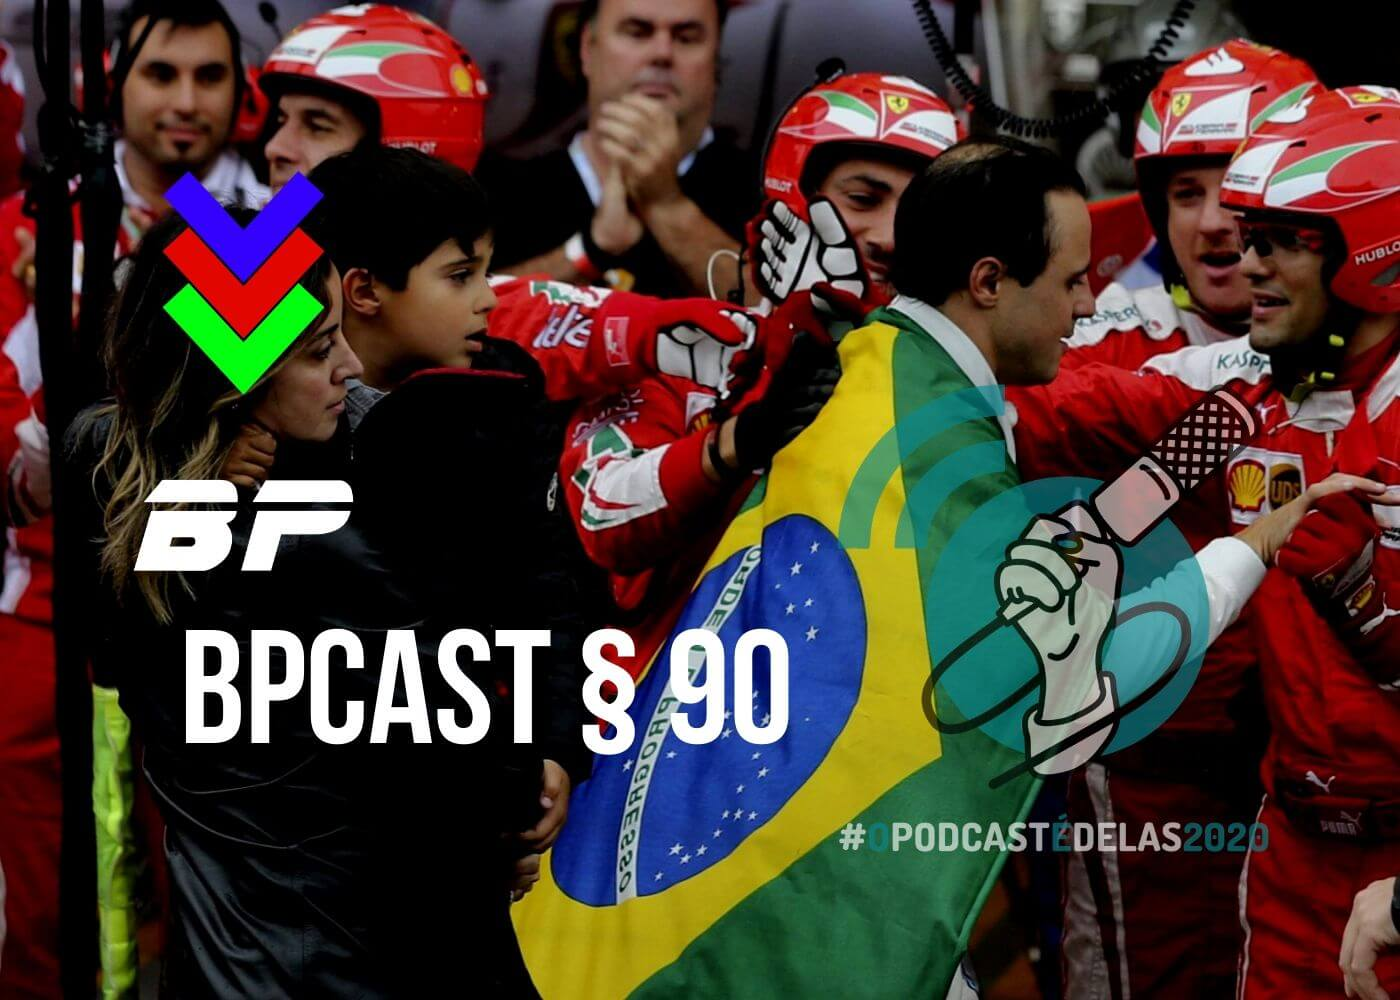 Photo of BPCast § 90 | GP do Brasil de 2016 e um bate-papo sobre a Pandemia – #OPodcastÉDelas2020